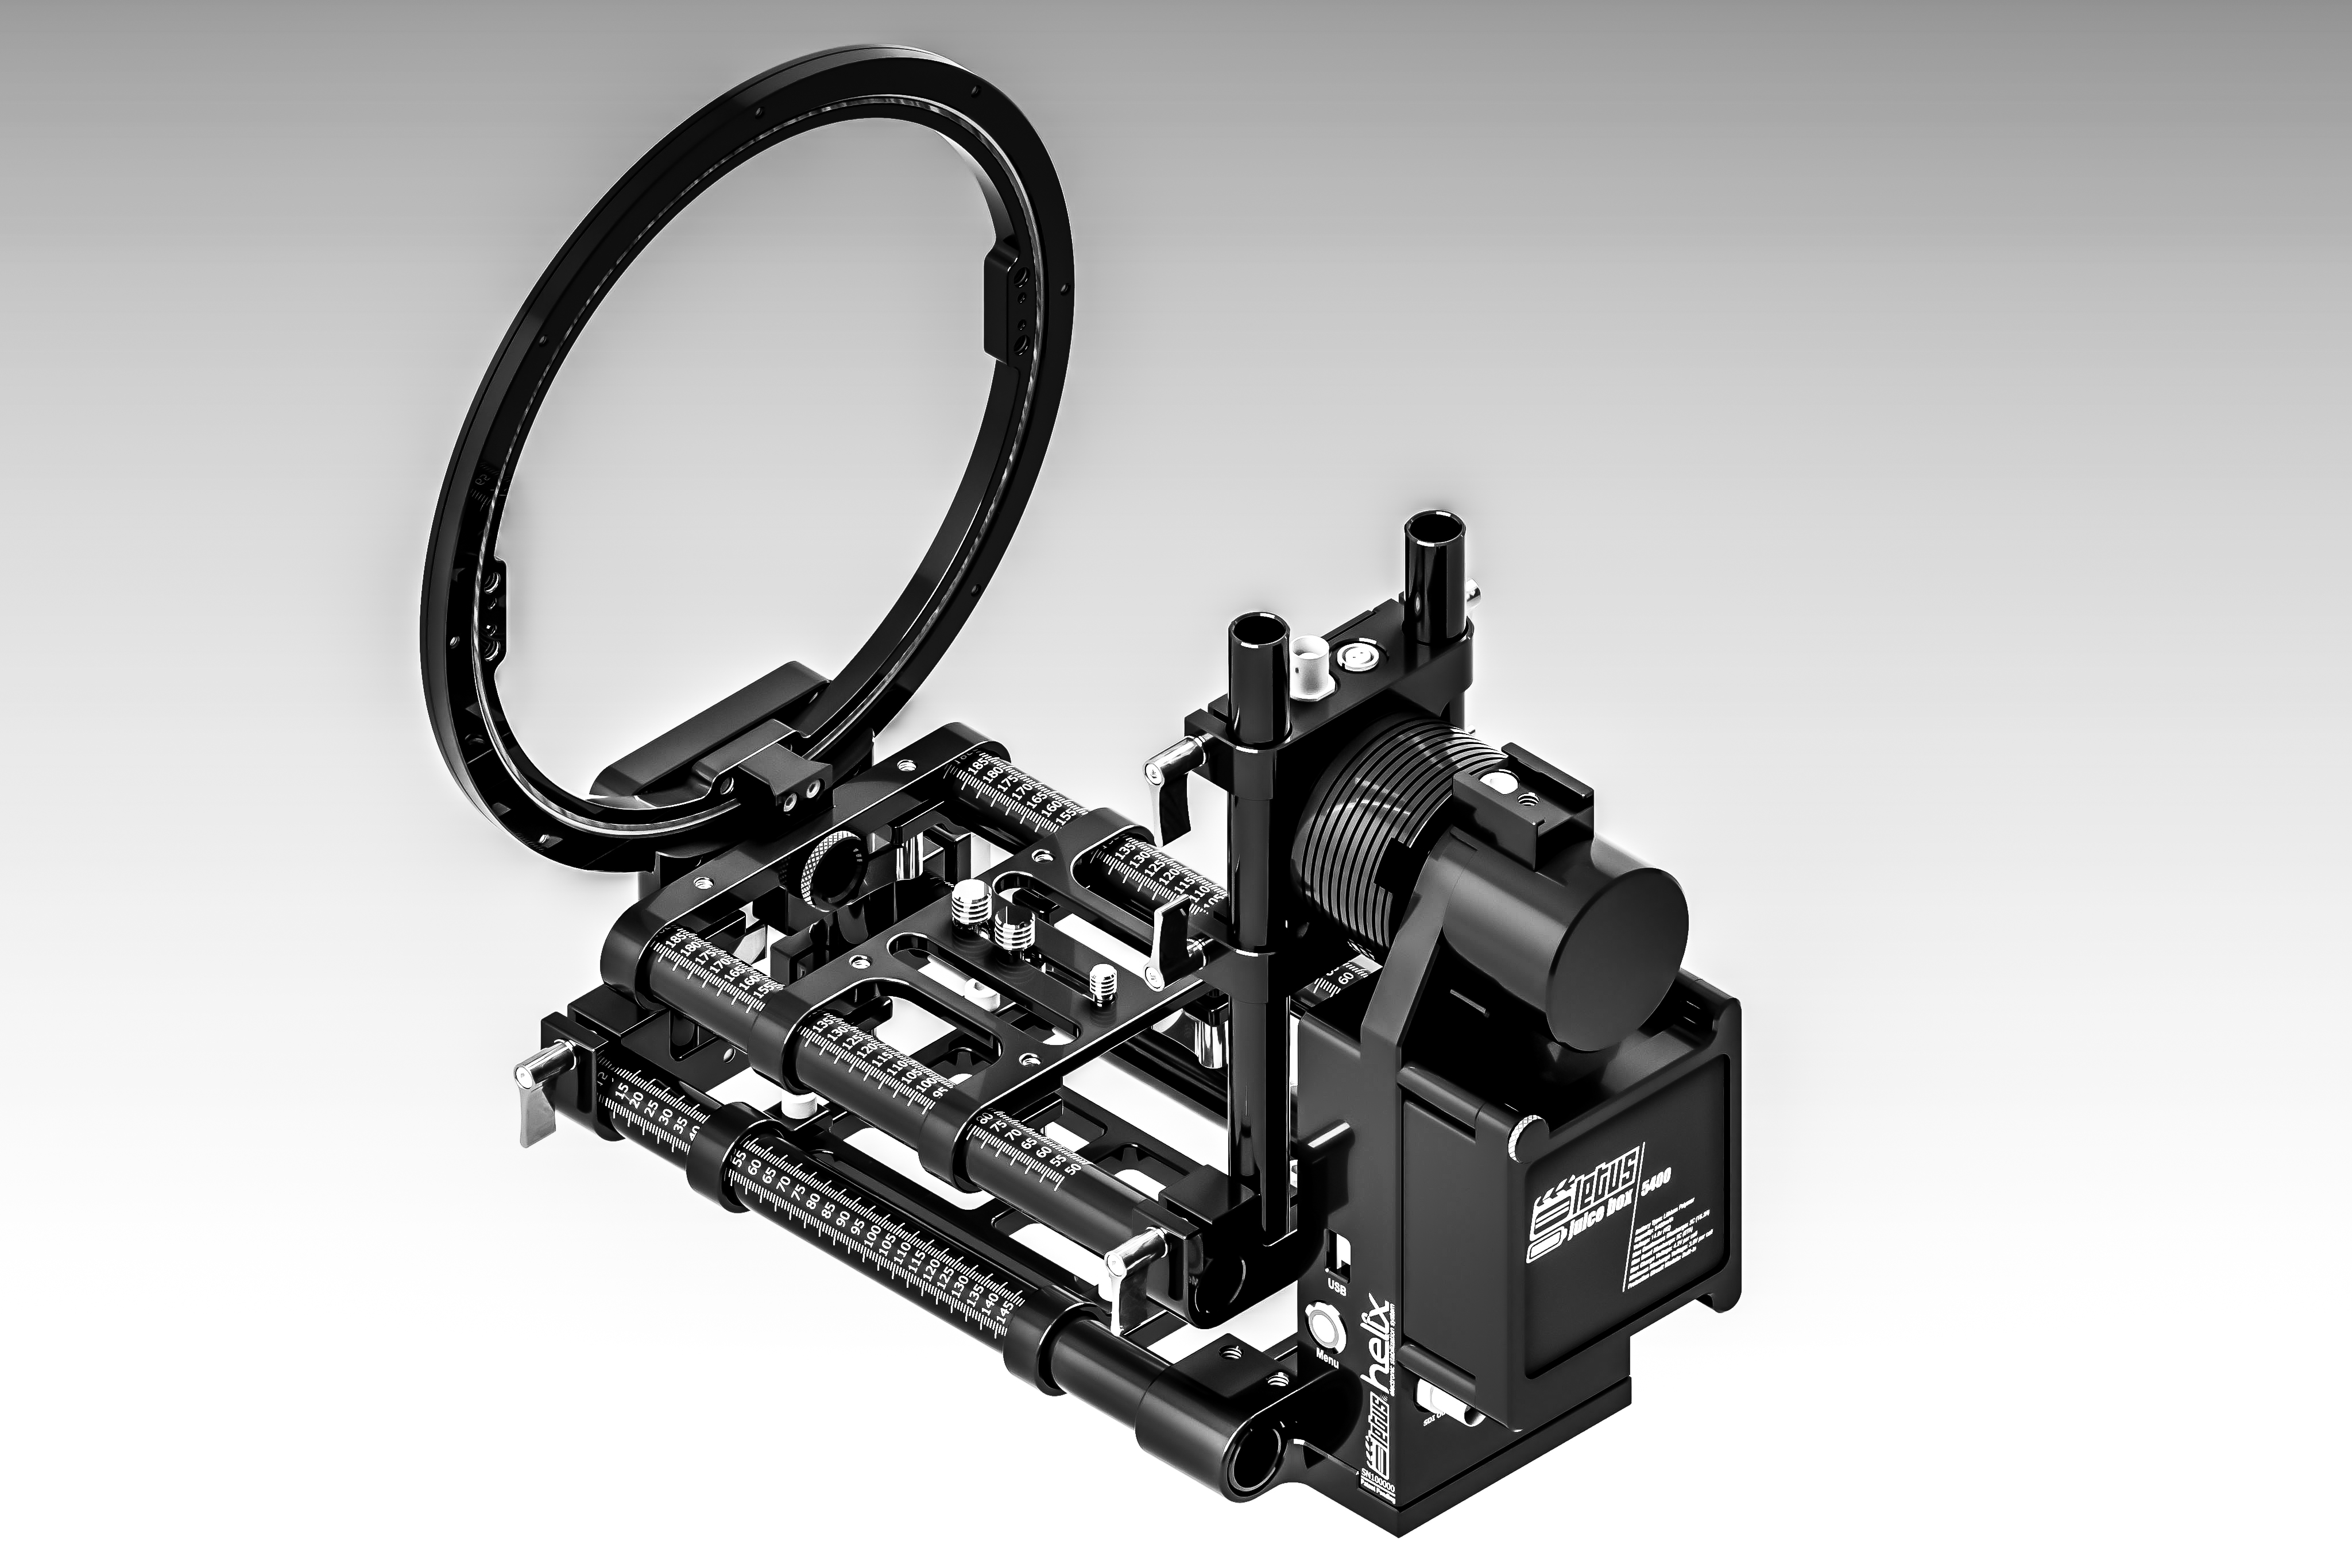 Standard_Helix_With_Front_Support (1)